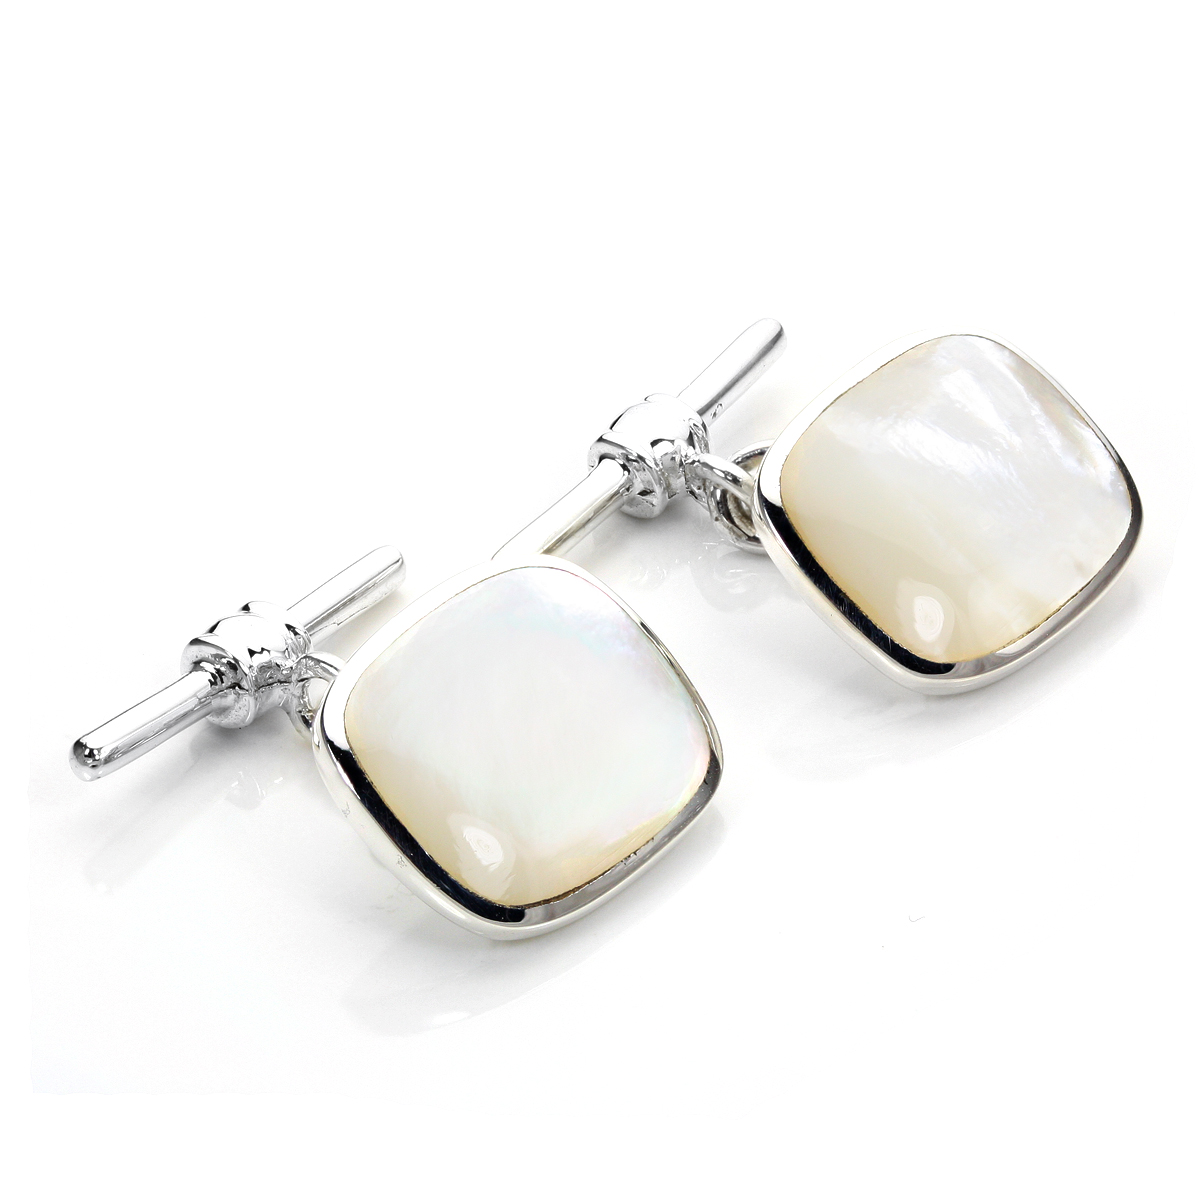 An image of Sterling Silver Oblong Mother of Pearl Toggle Cufflinks